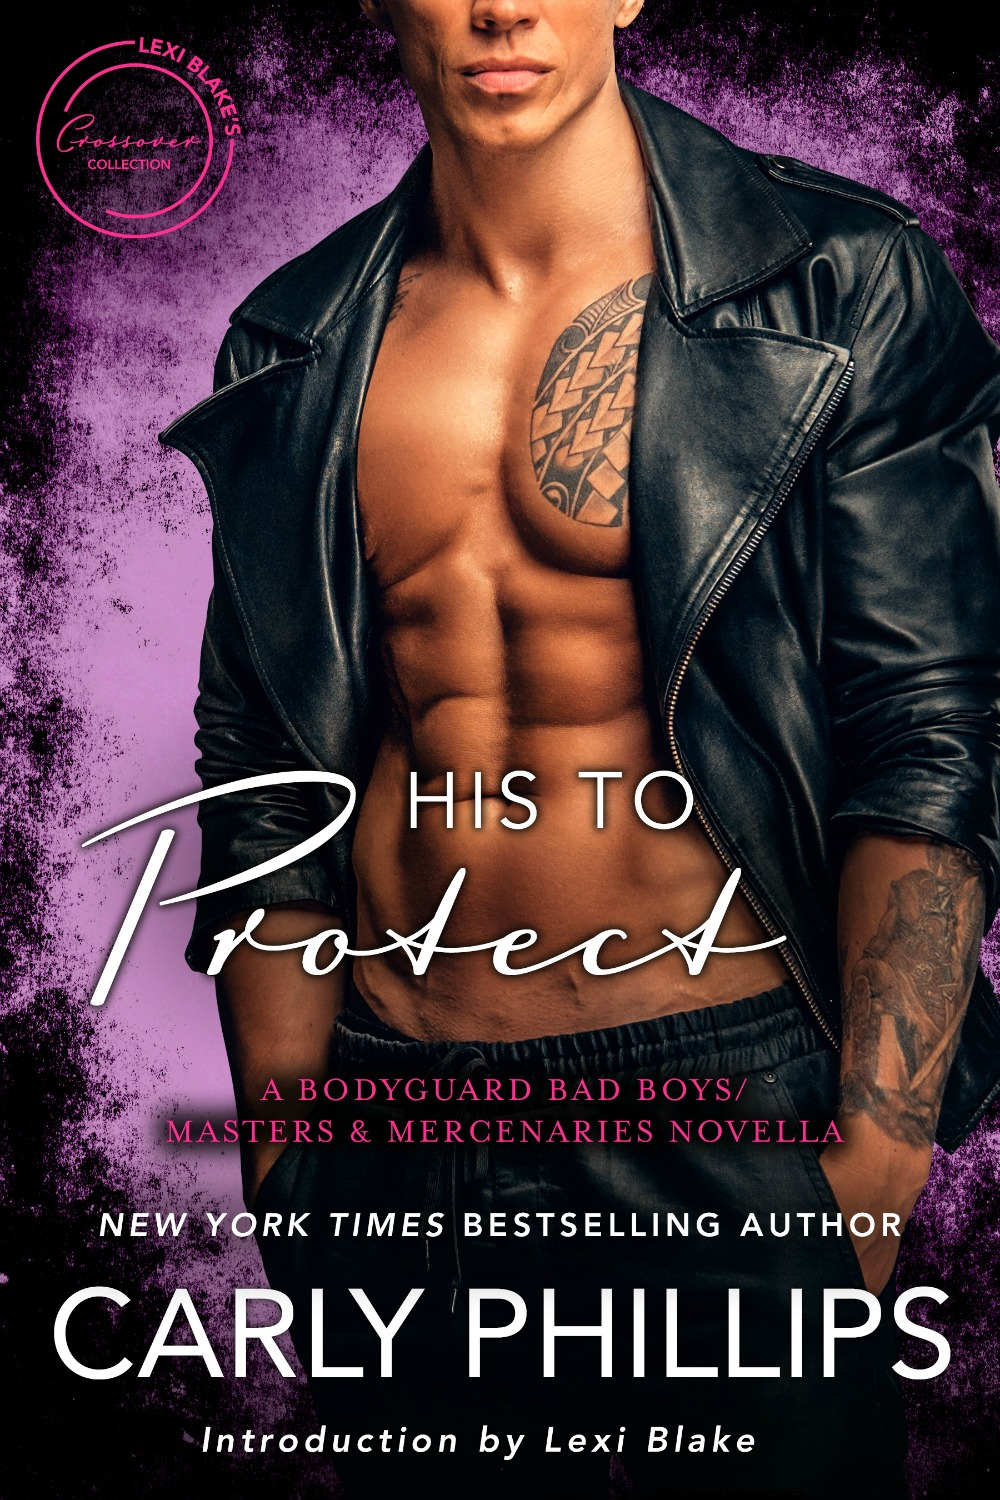 His to Protect: A Bachelor Bad Boys/Masters and Mercenaries Novella by Carly Phillips:   Talia Shaw has spent her adult life working as a scientist for a big pharmaceutical company. She's focused on saving lives, not living life. When her lab is broken into and it's clear someone is after the top secret formula she's working on, she turns to the one man she can trust. The same irresistible man she turned away years earlier because she was too young and naive to believe a sexy guy like Shane Landon could want her.    Shane Landon's bodyguard work for McKay-Taggart is the one thing that brings him satisfaction in his life. Relationships come in second to the job. Always. Then little brainiac Talia Shaw shows up in his backyard, frightened and on the run, and his world is turned upside down. And not just because she's found him naked in his outdoor shower, either.    With Talia's life in danger, Shane has to get her out of town and to her eccentric, hermit mentor who has the final piece of the formula she's been working on, while keeping her safe from the men who are after her. Guarding Talia's body certainly isn't any hardship, but he never expects to fall hard and fast for his best friend's little sister and the only woman who's ever really gotten under his skin.    Amazon:   http://amzn.to/2qDNKb5   B&N:  http://bit.ly/2CsEJ9x  iBooks:    https://apple.co/2GC5MWA  Kobo:  http://bit.ly/2HrcNXp  Google Play:  http://bit.ly/2hEcNtV